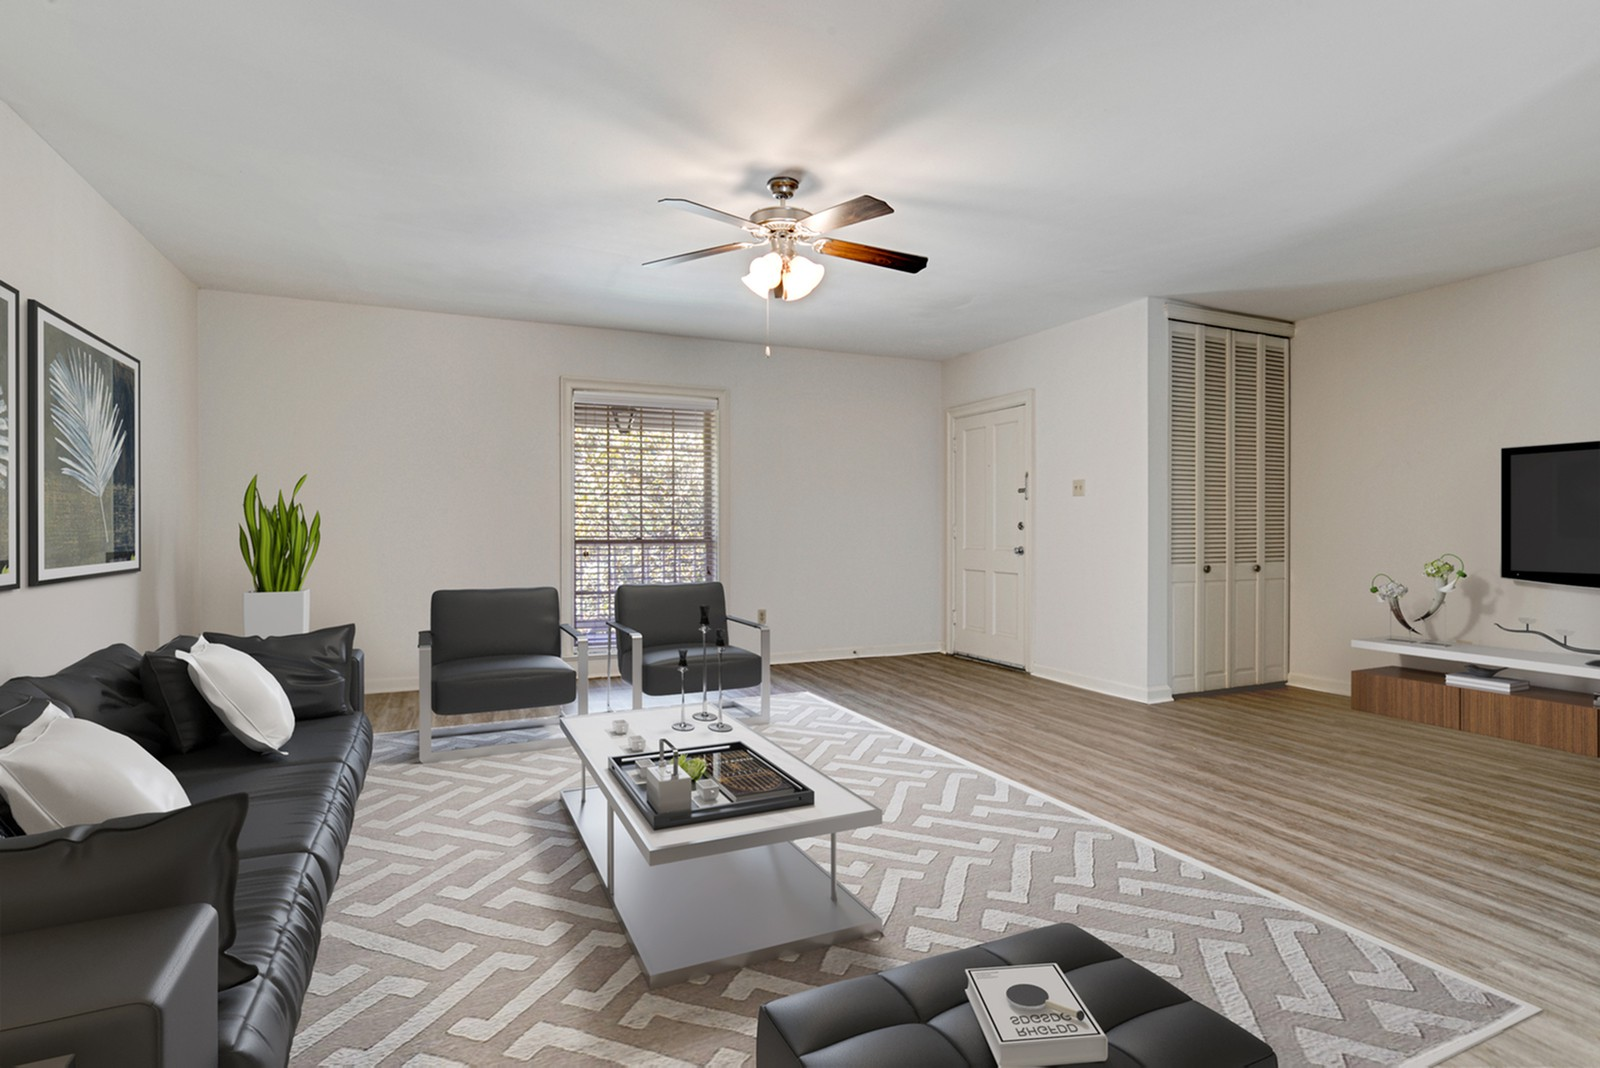 Apartments Near LSU The Patrician for Louisiana State University Students in Baton Rouge, LA